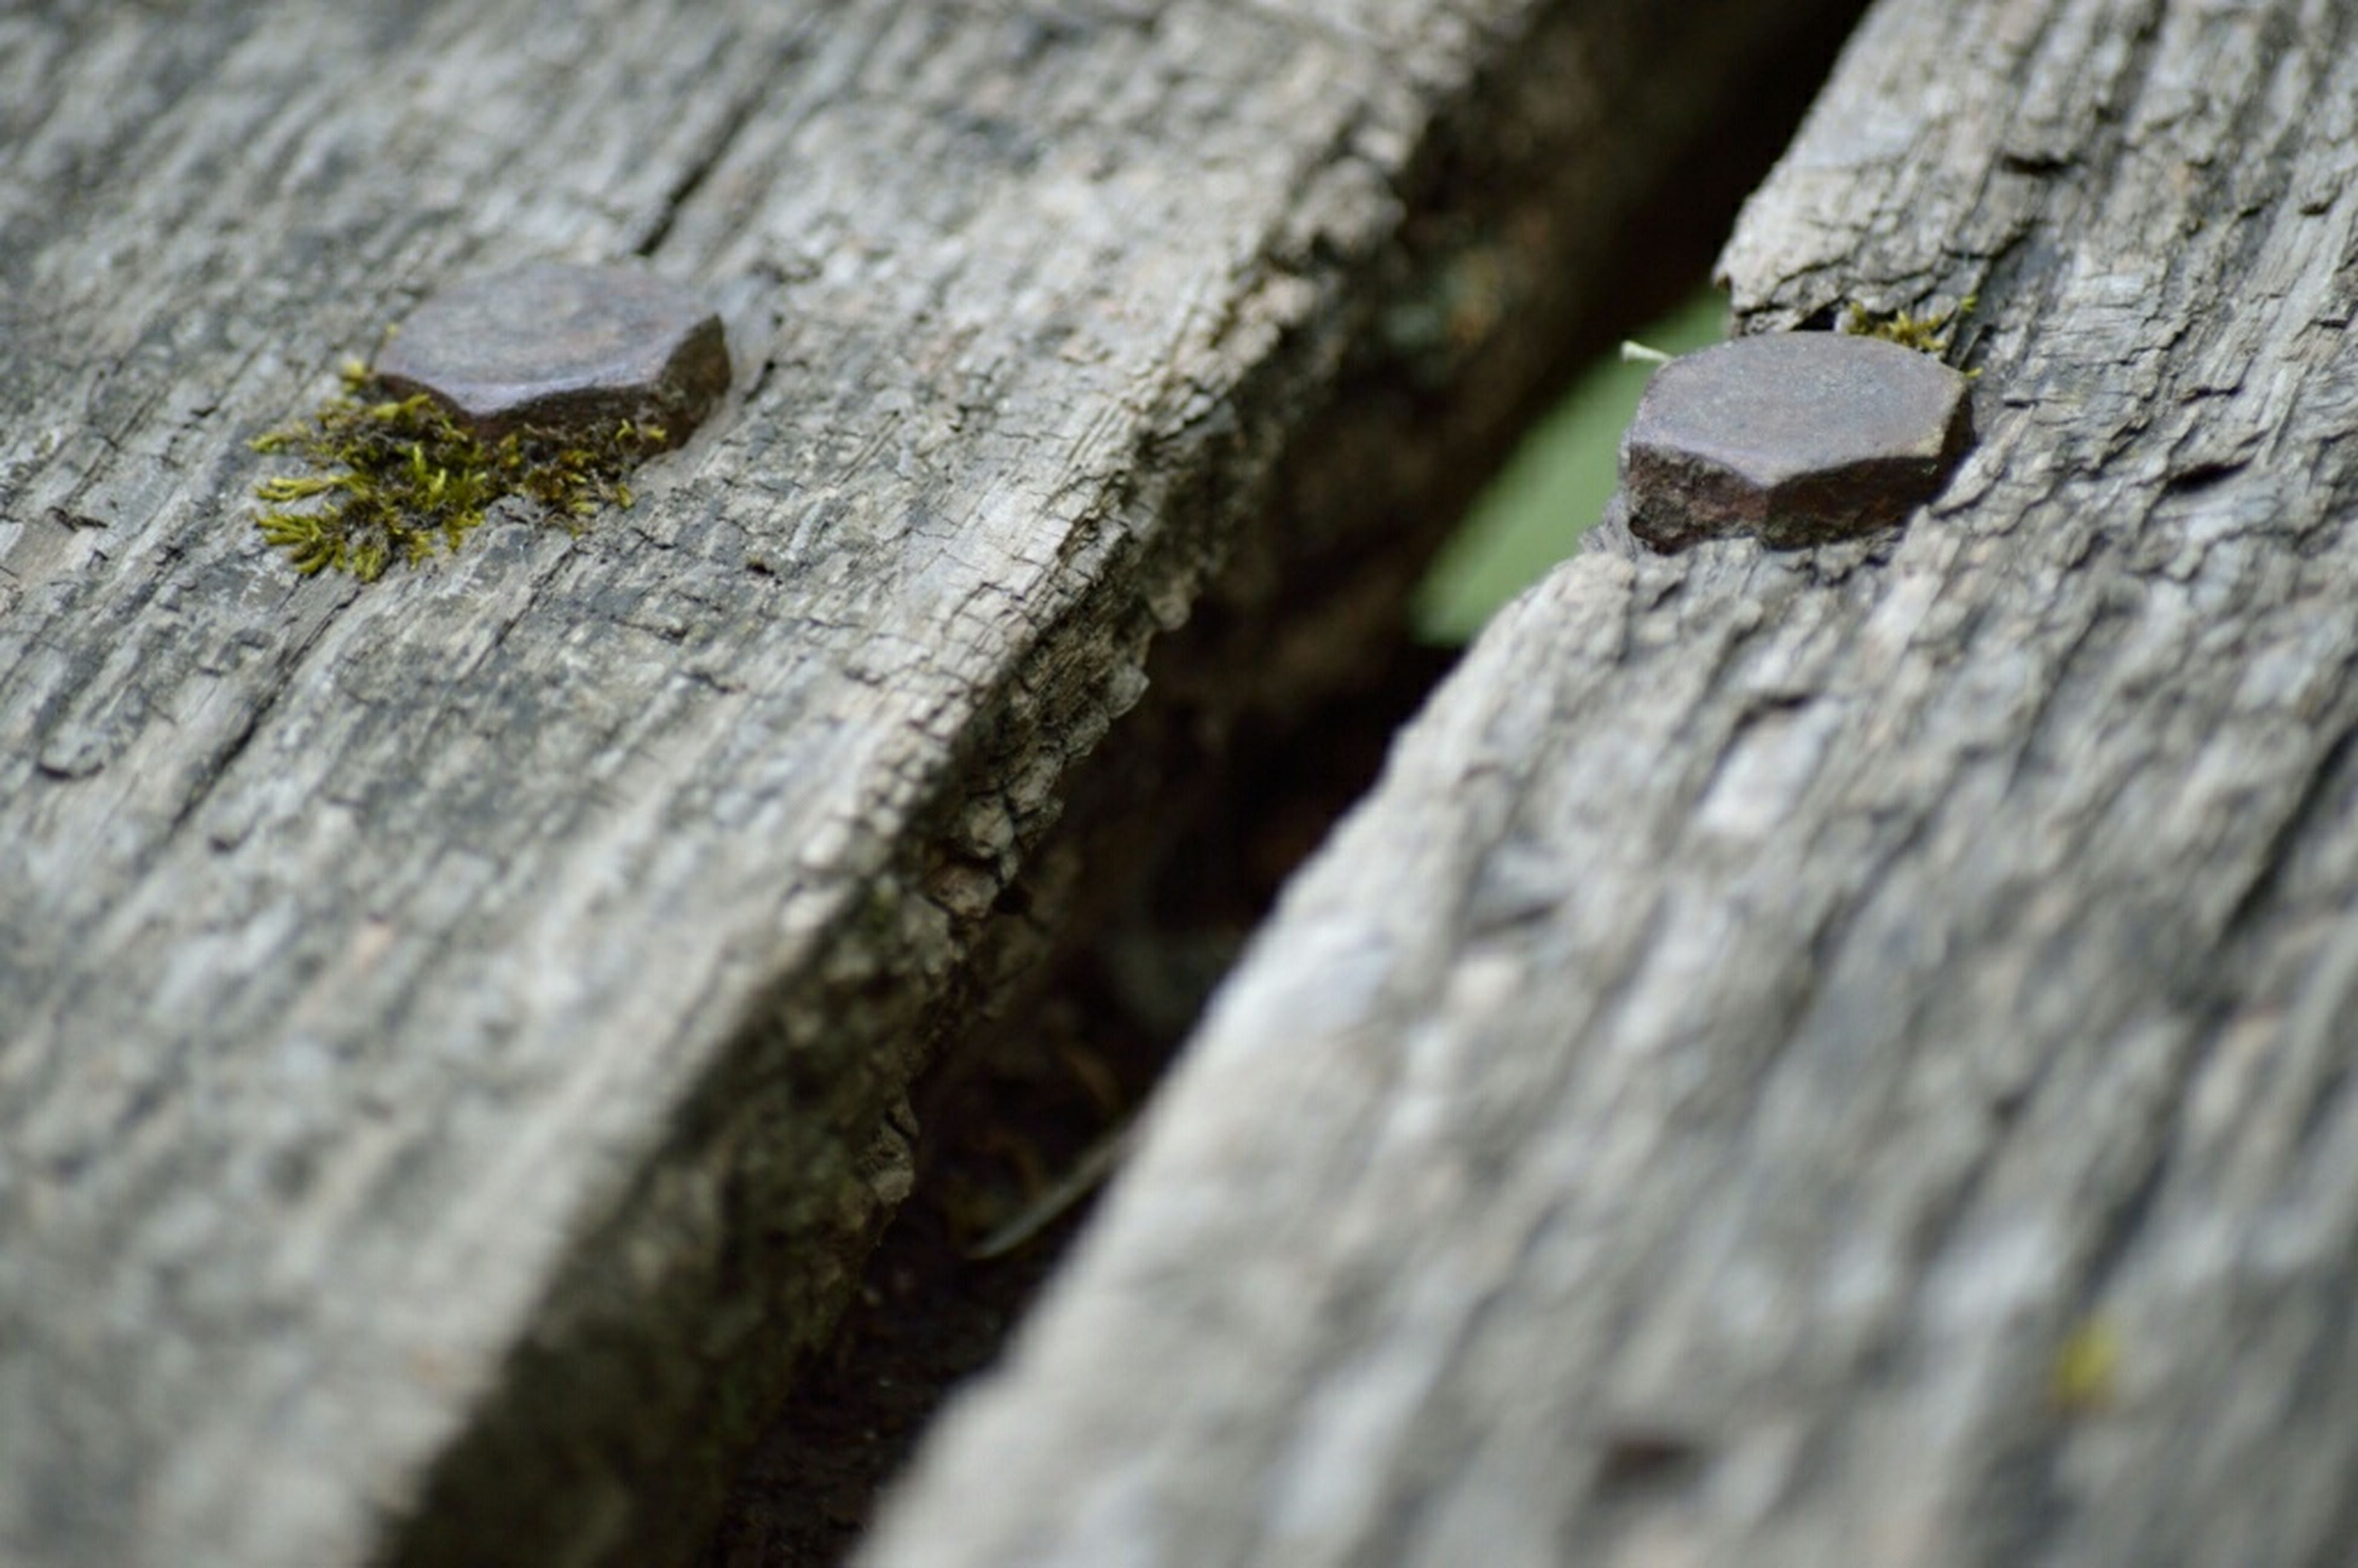 wood - material, wooden, plank, wood, close-up, textured, selective focus, weathered, rough, animal themes, wildlife, day, outdoors, focus on foreground, old, nature, insect, tree trunk, one animal, no people